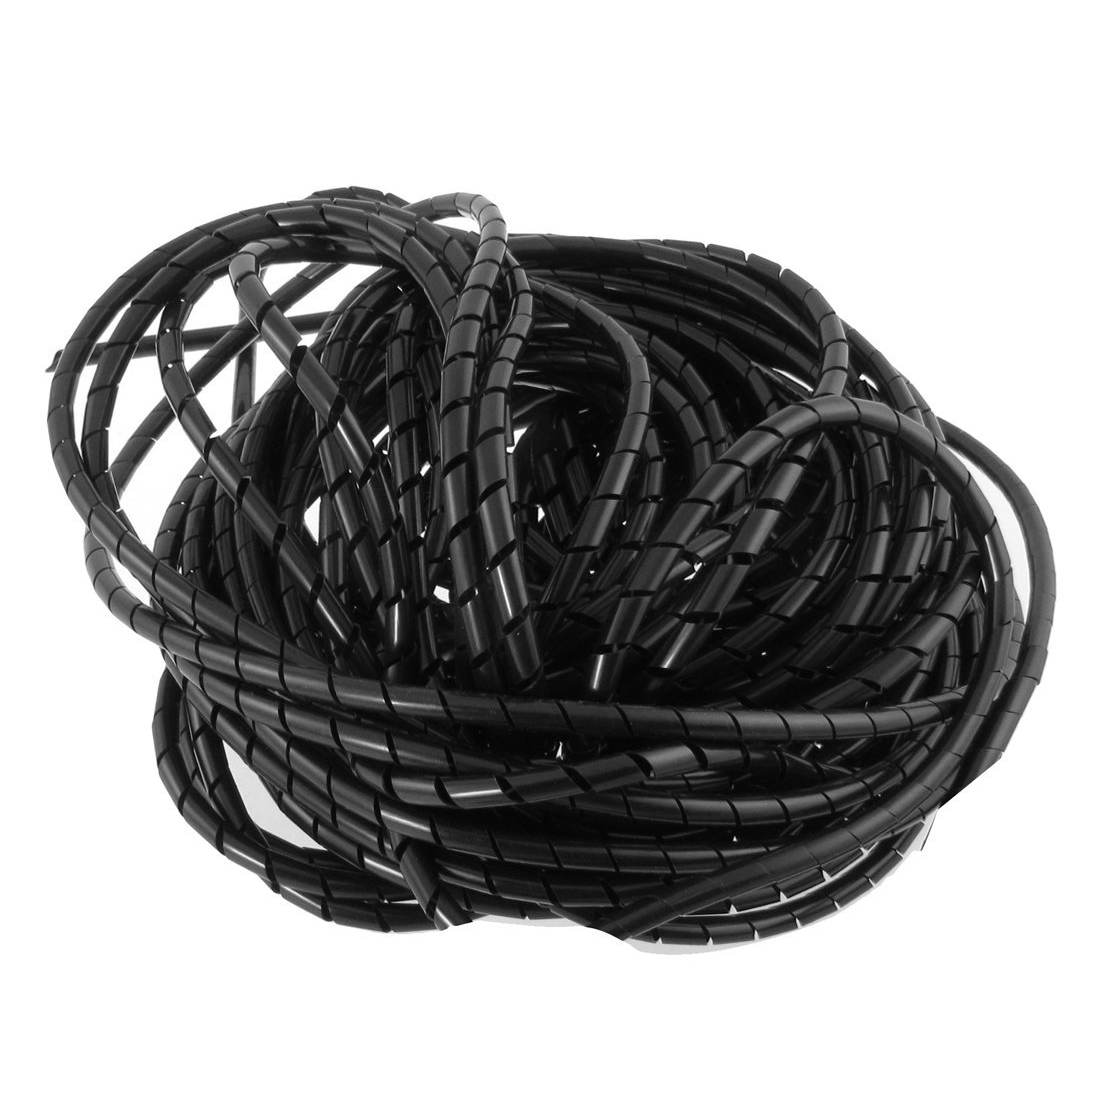 JFBL Hot 21M 68 Ft PE Polyethylene Spiral Wire Wrap Tube PC Manage Cable 6mm 1m 50mm black white flexible pe polyethylene desktop pc cord cable wire manage protective sleeve spiral wrapping band tube